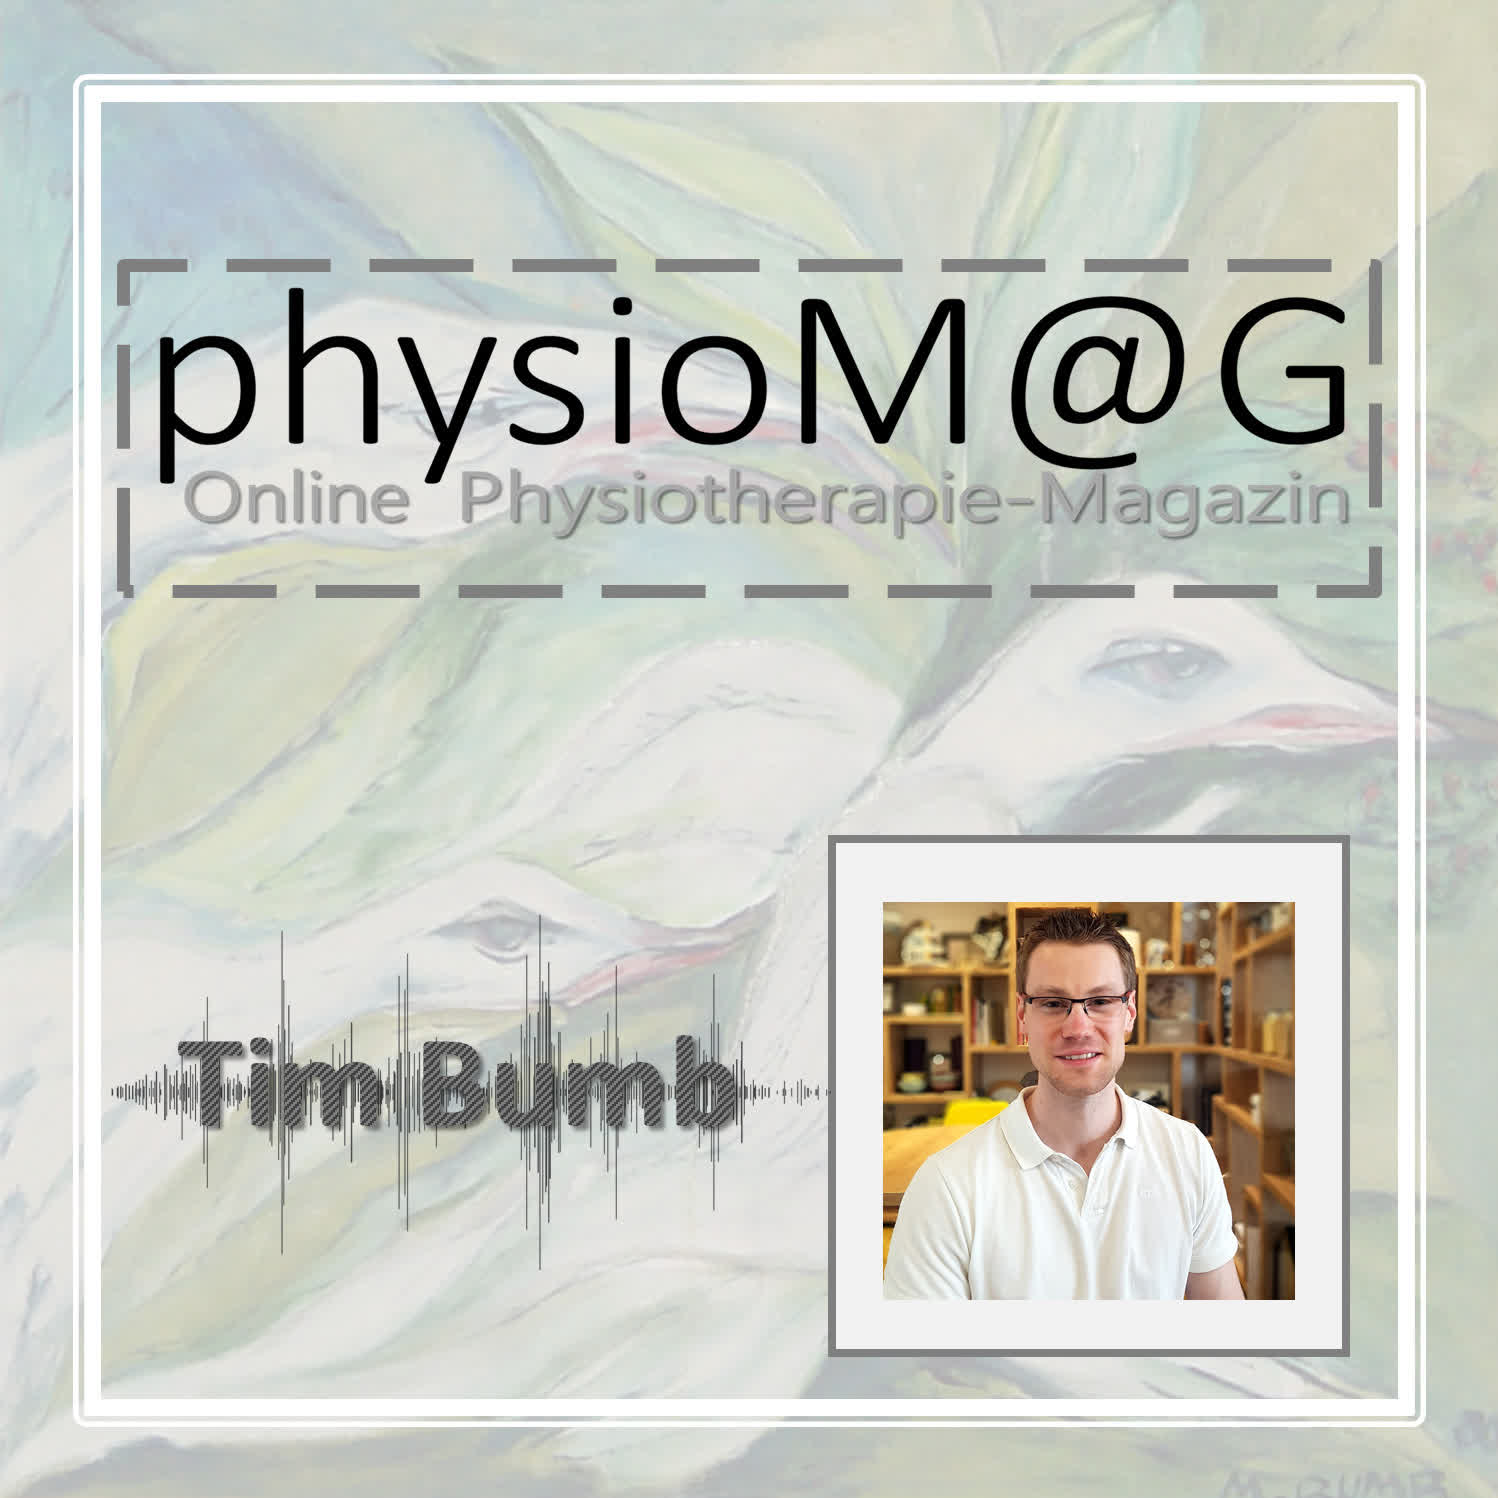 physioMAG - Online Physiotherapie Magazin